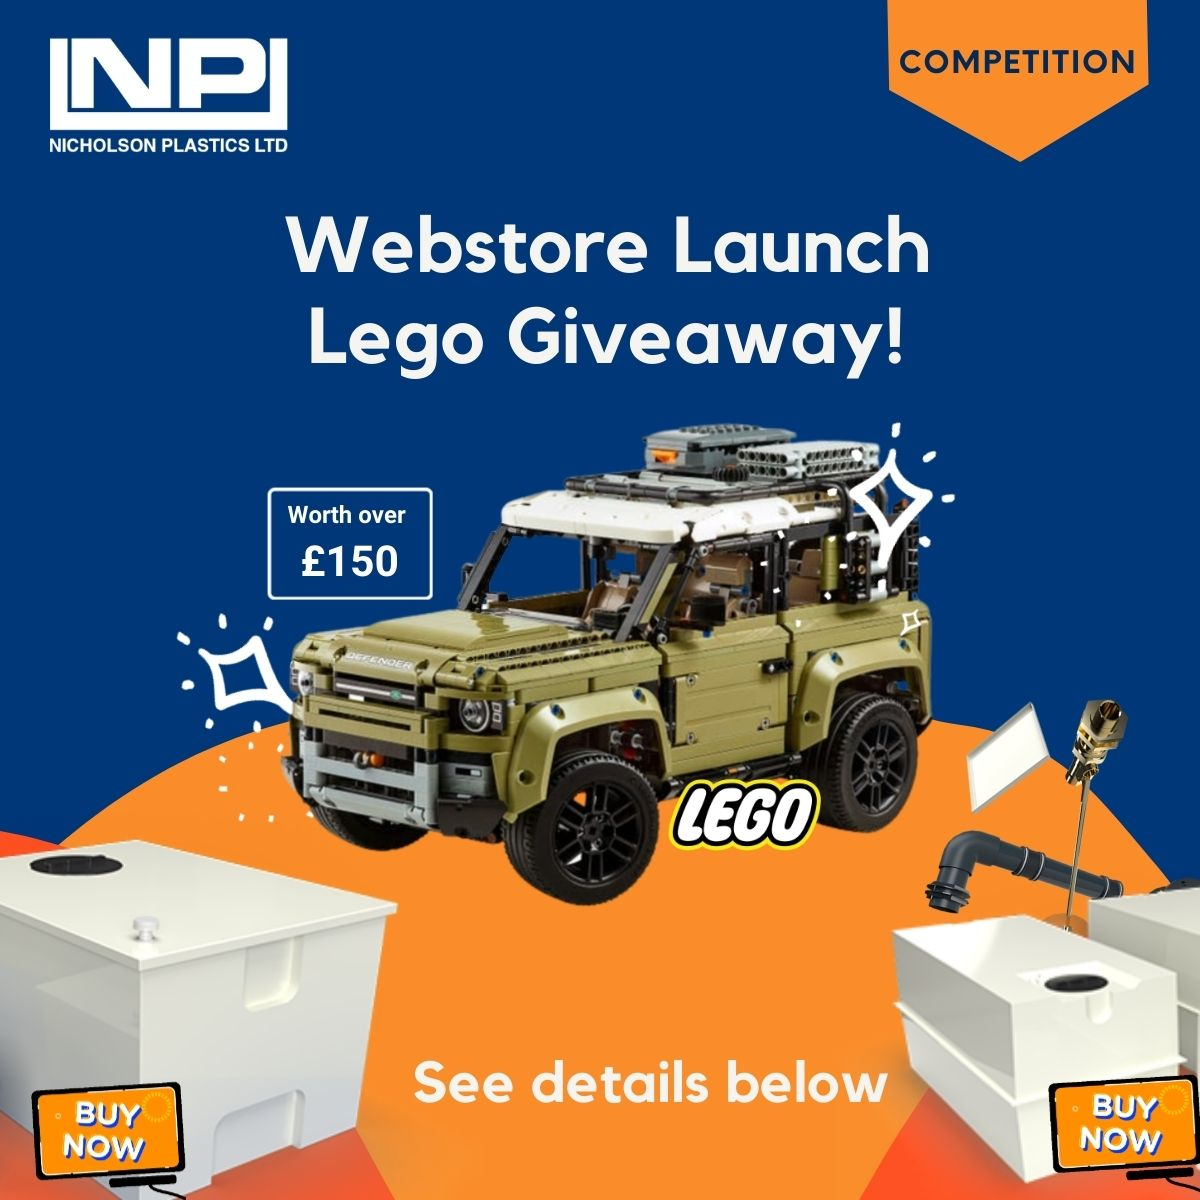 NP webstore competition